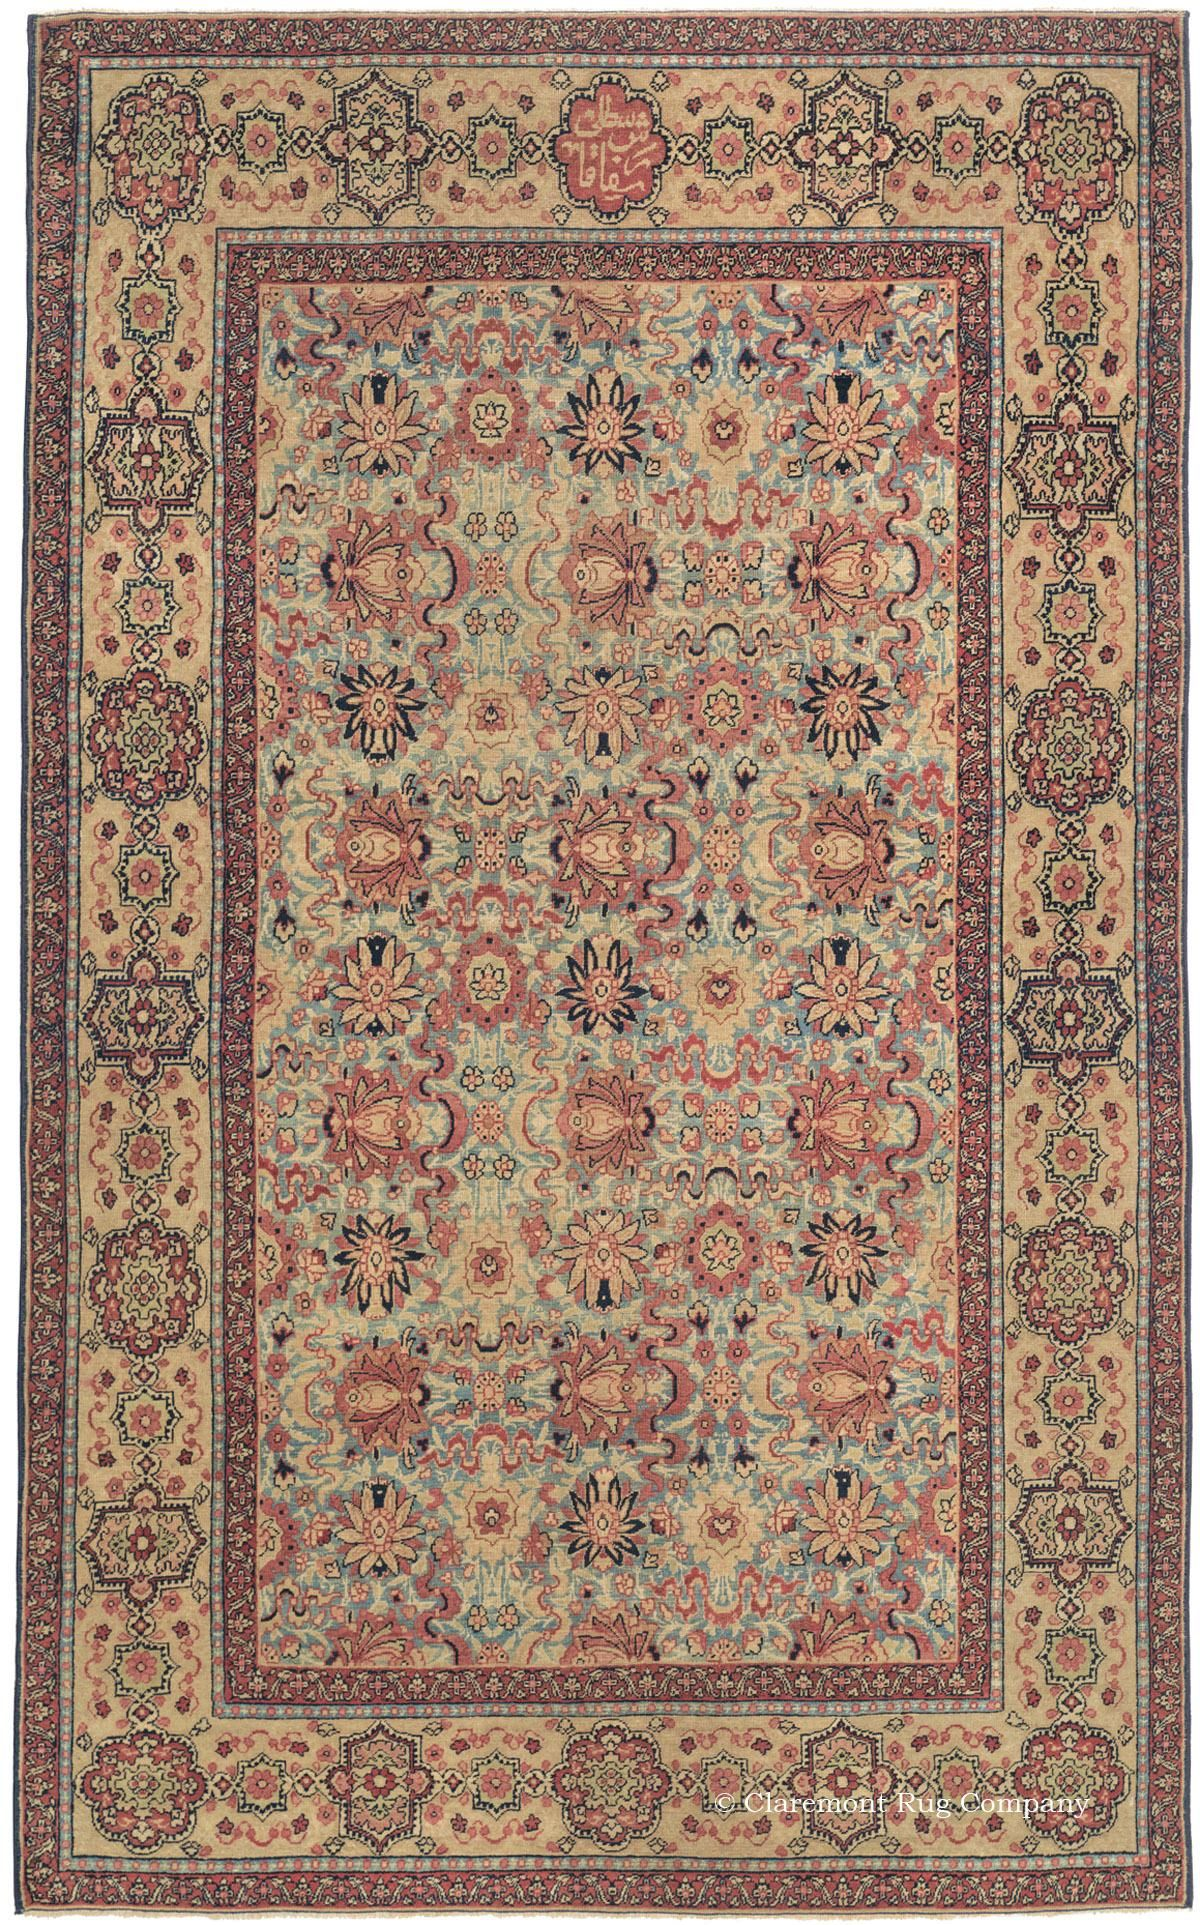 LAVER KIRMAN - Southeast Persian 4ft 5in x 6ft 11in Late 19th Century